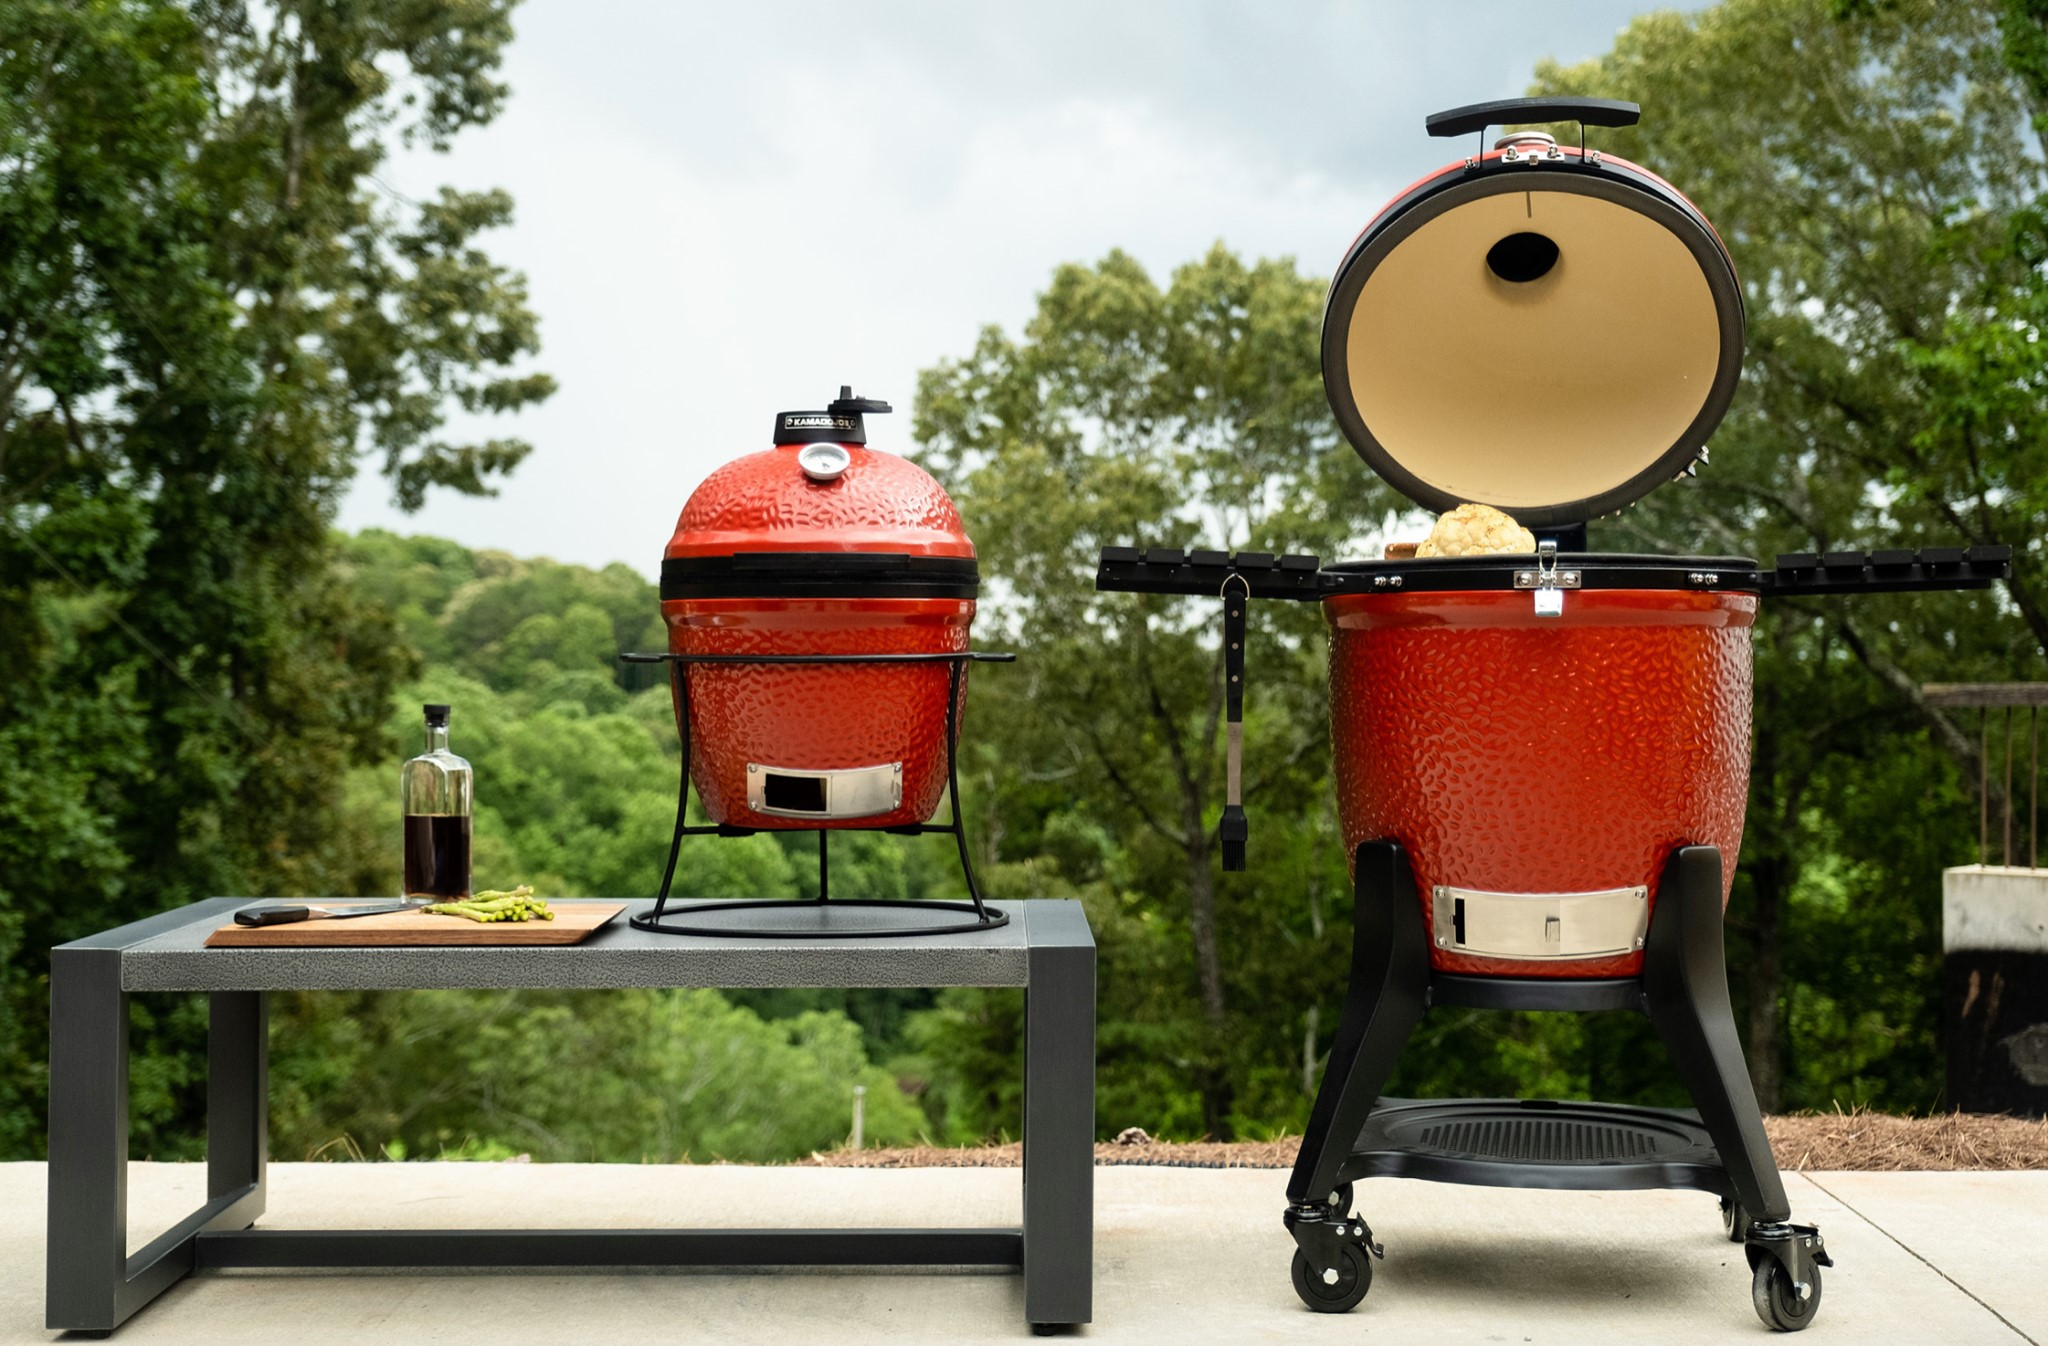 The Correct Way to Use a Kamado Grill - A Beginner's Guide